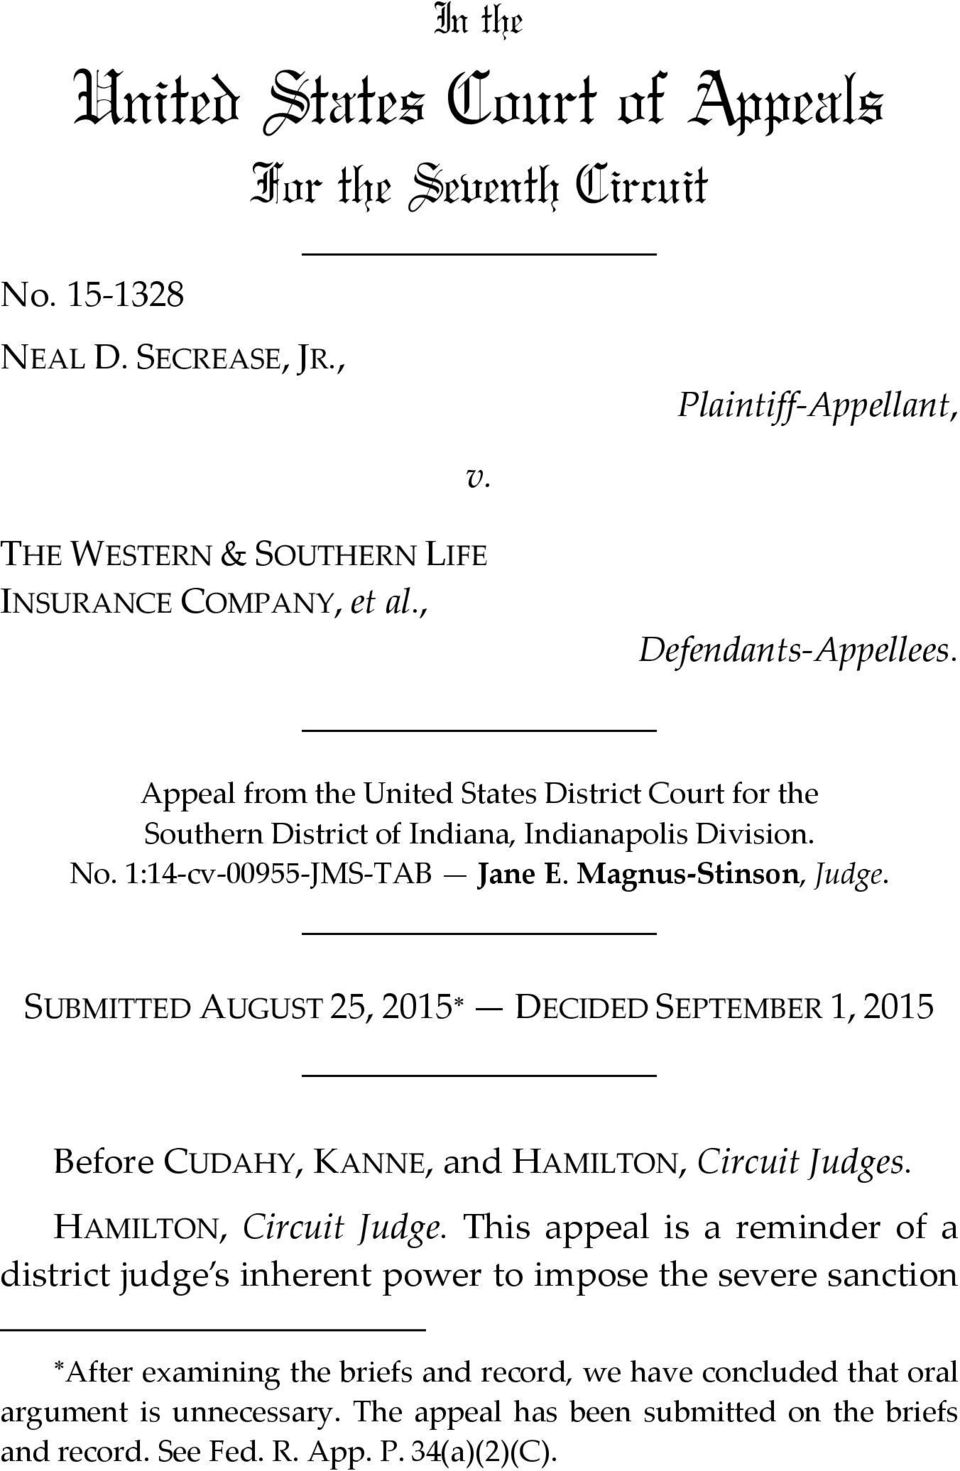 SUBMITTED AUGUST 25, 2015 DECIDED SEPTEMBER 1, 2015 Before CUDAHY, KANNE, and HAMILTON, Circuit Judges